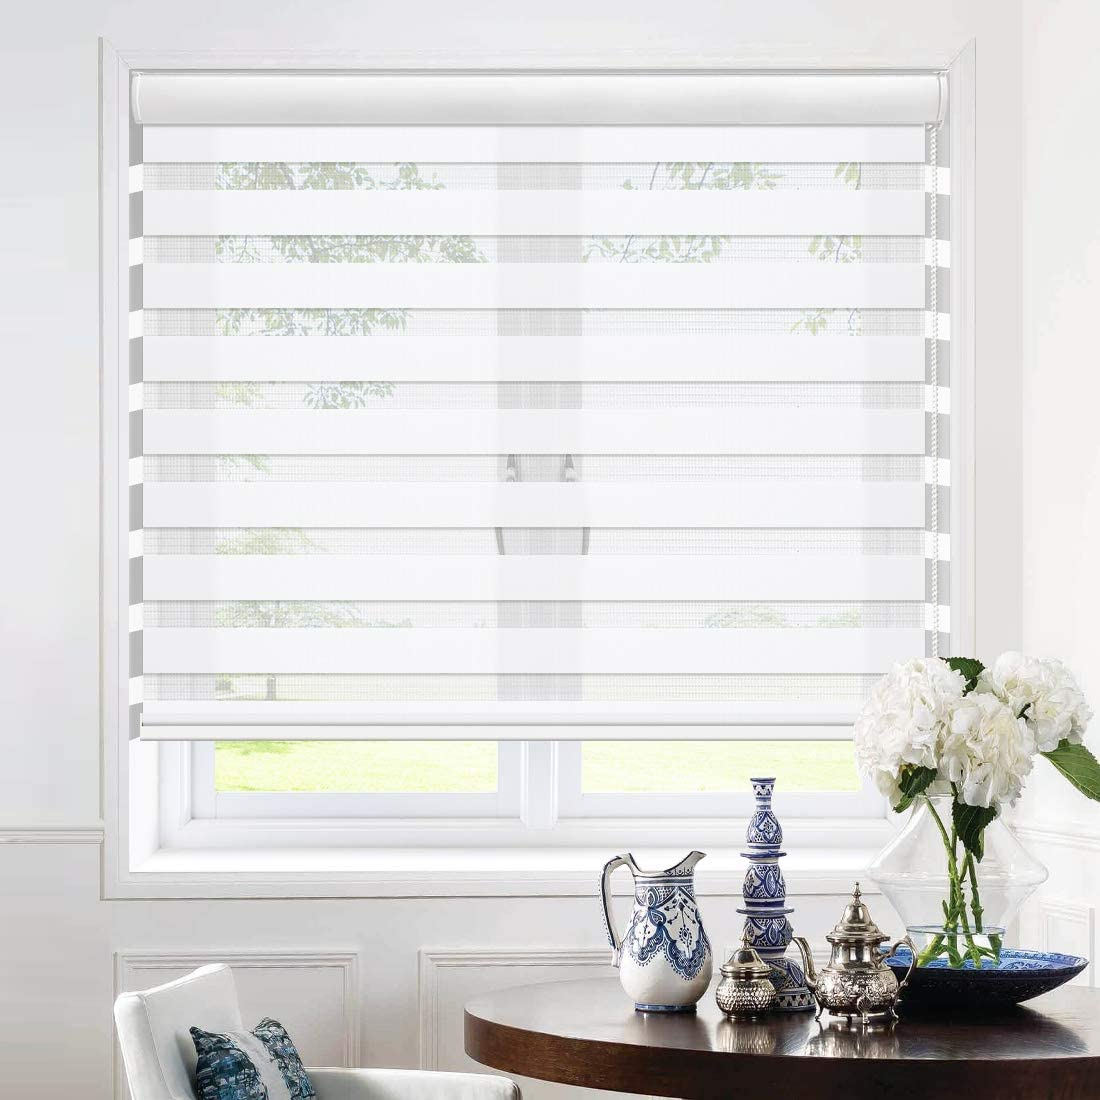 Keego Window Blinds Custom Cut to Outstanding Super special price with Dual Zebra Size La